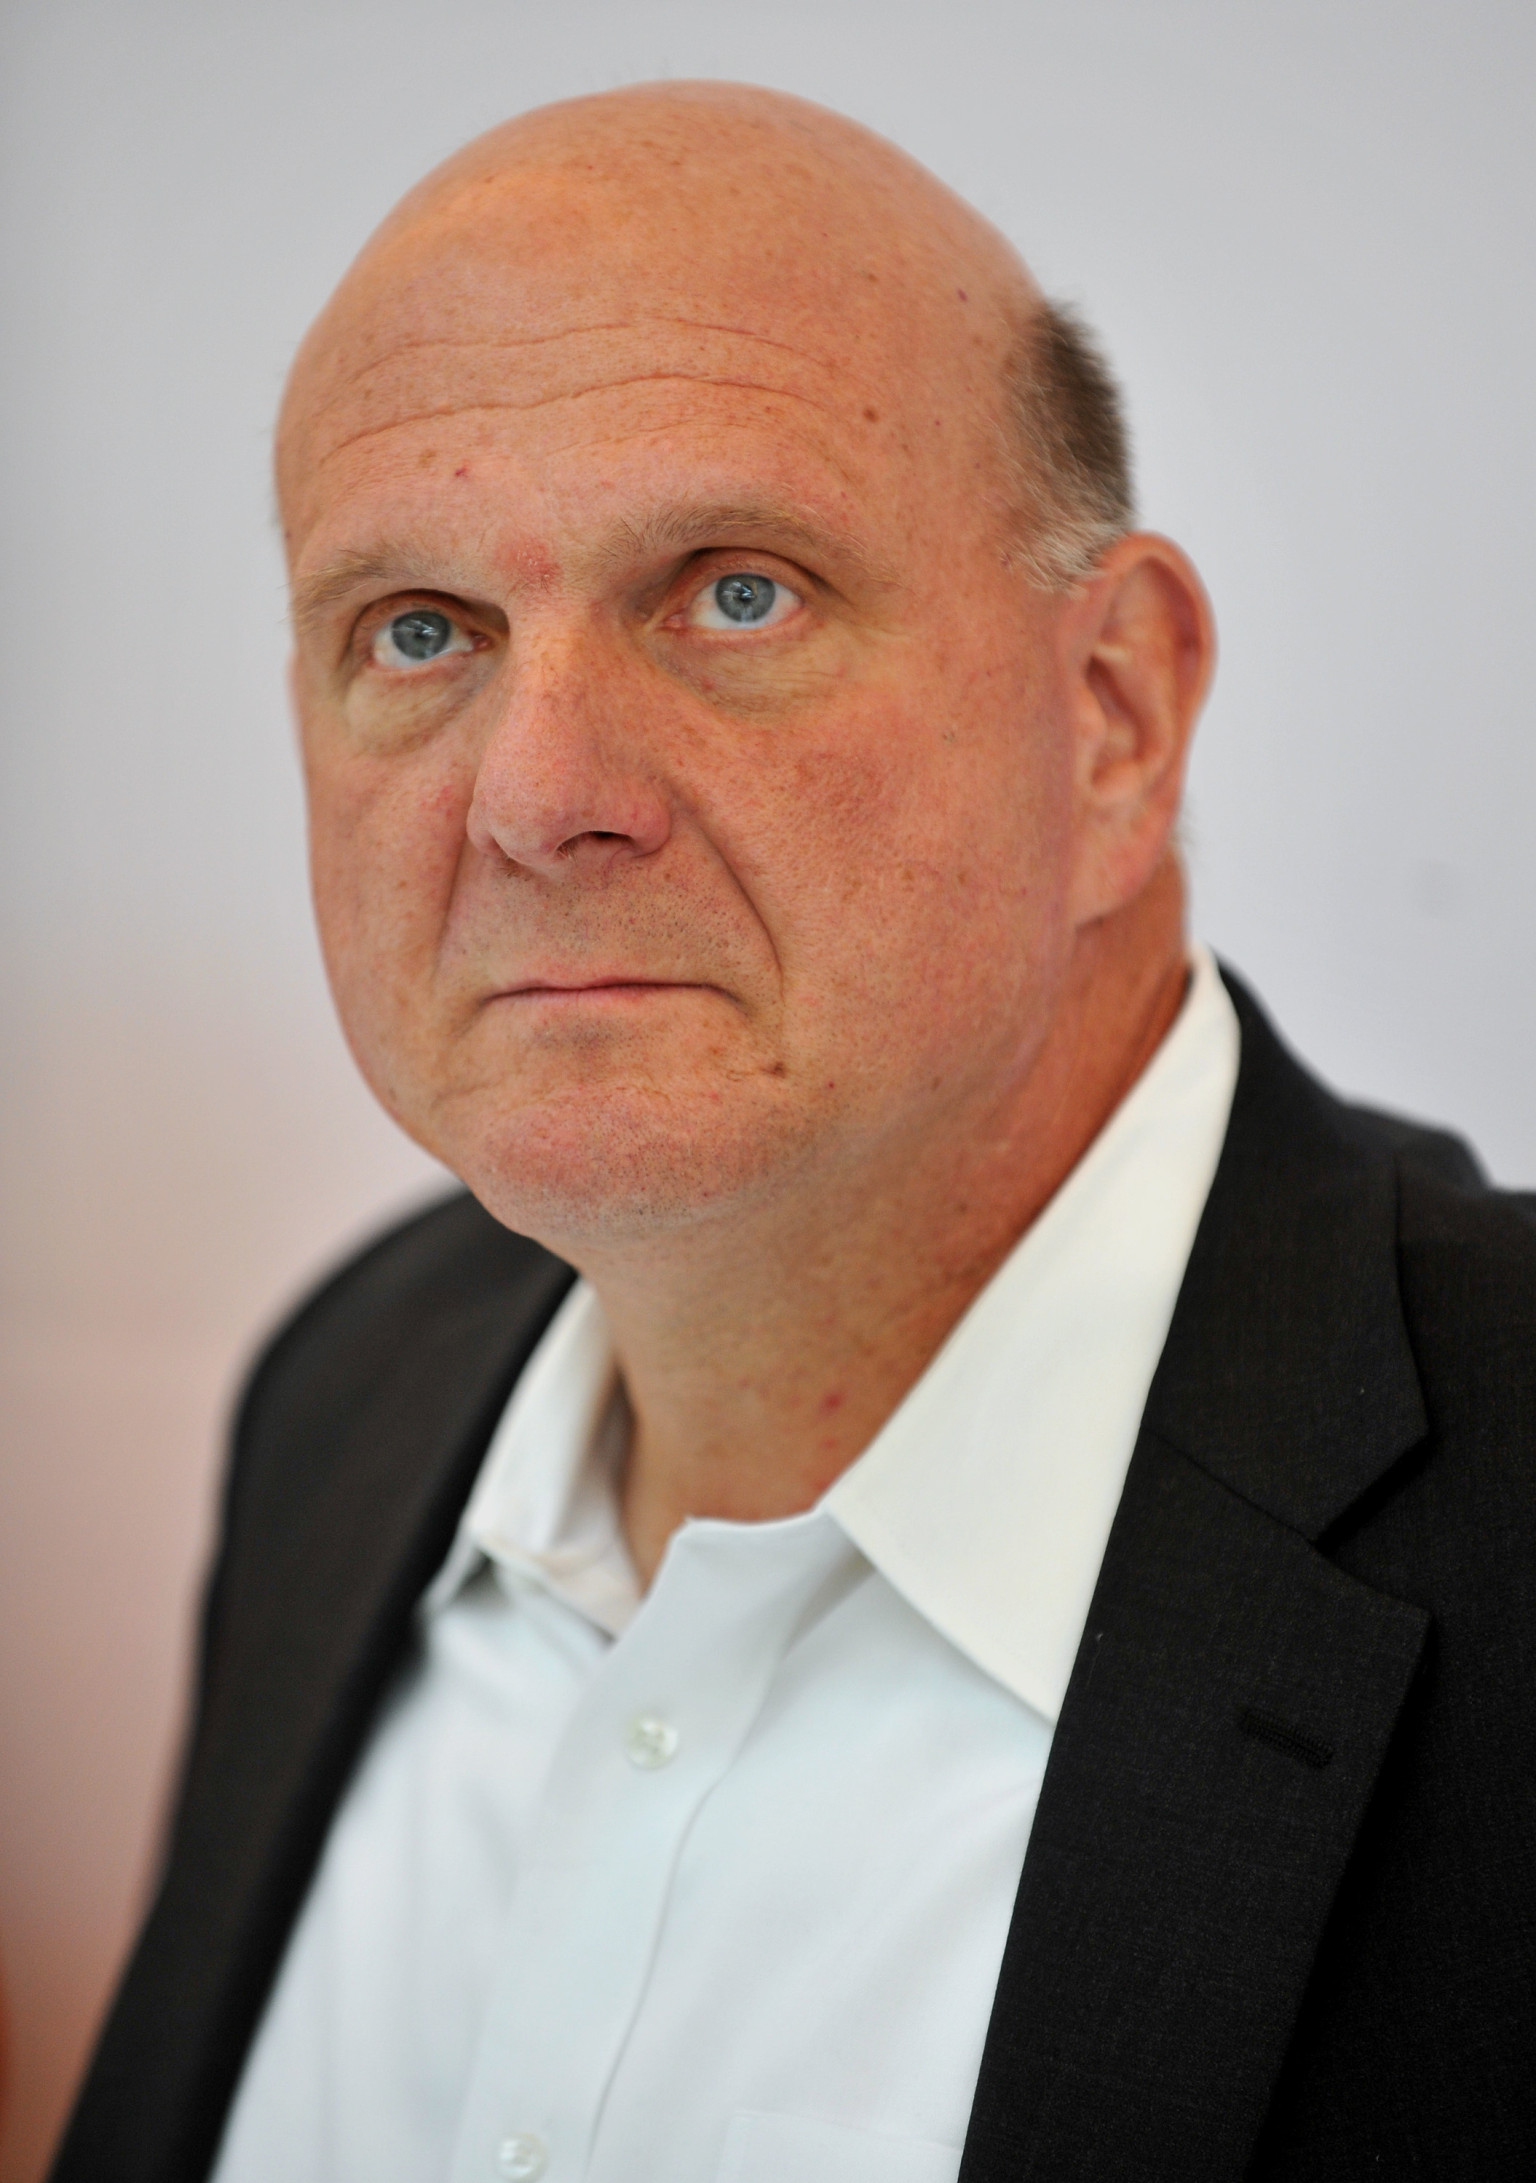 steve ballmer was forced out from microsoft ceo spot